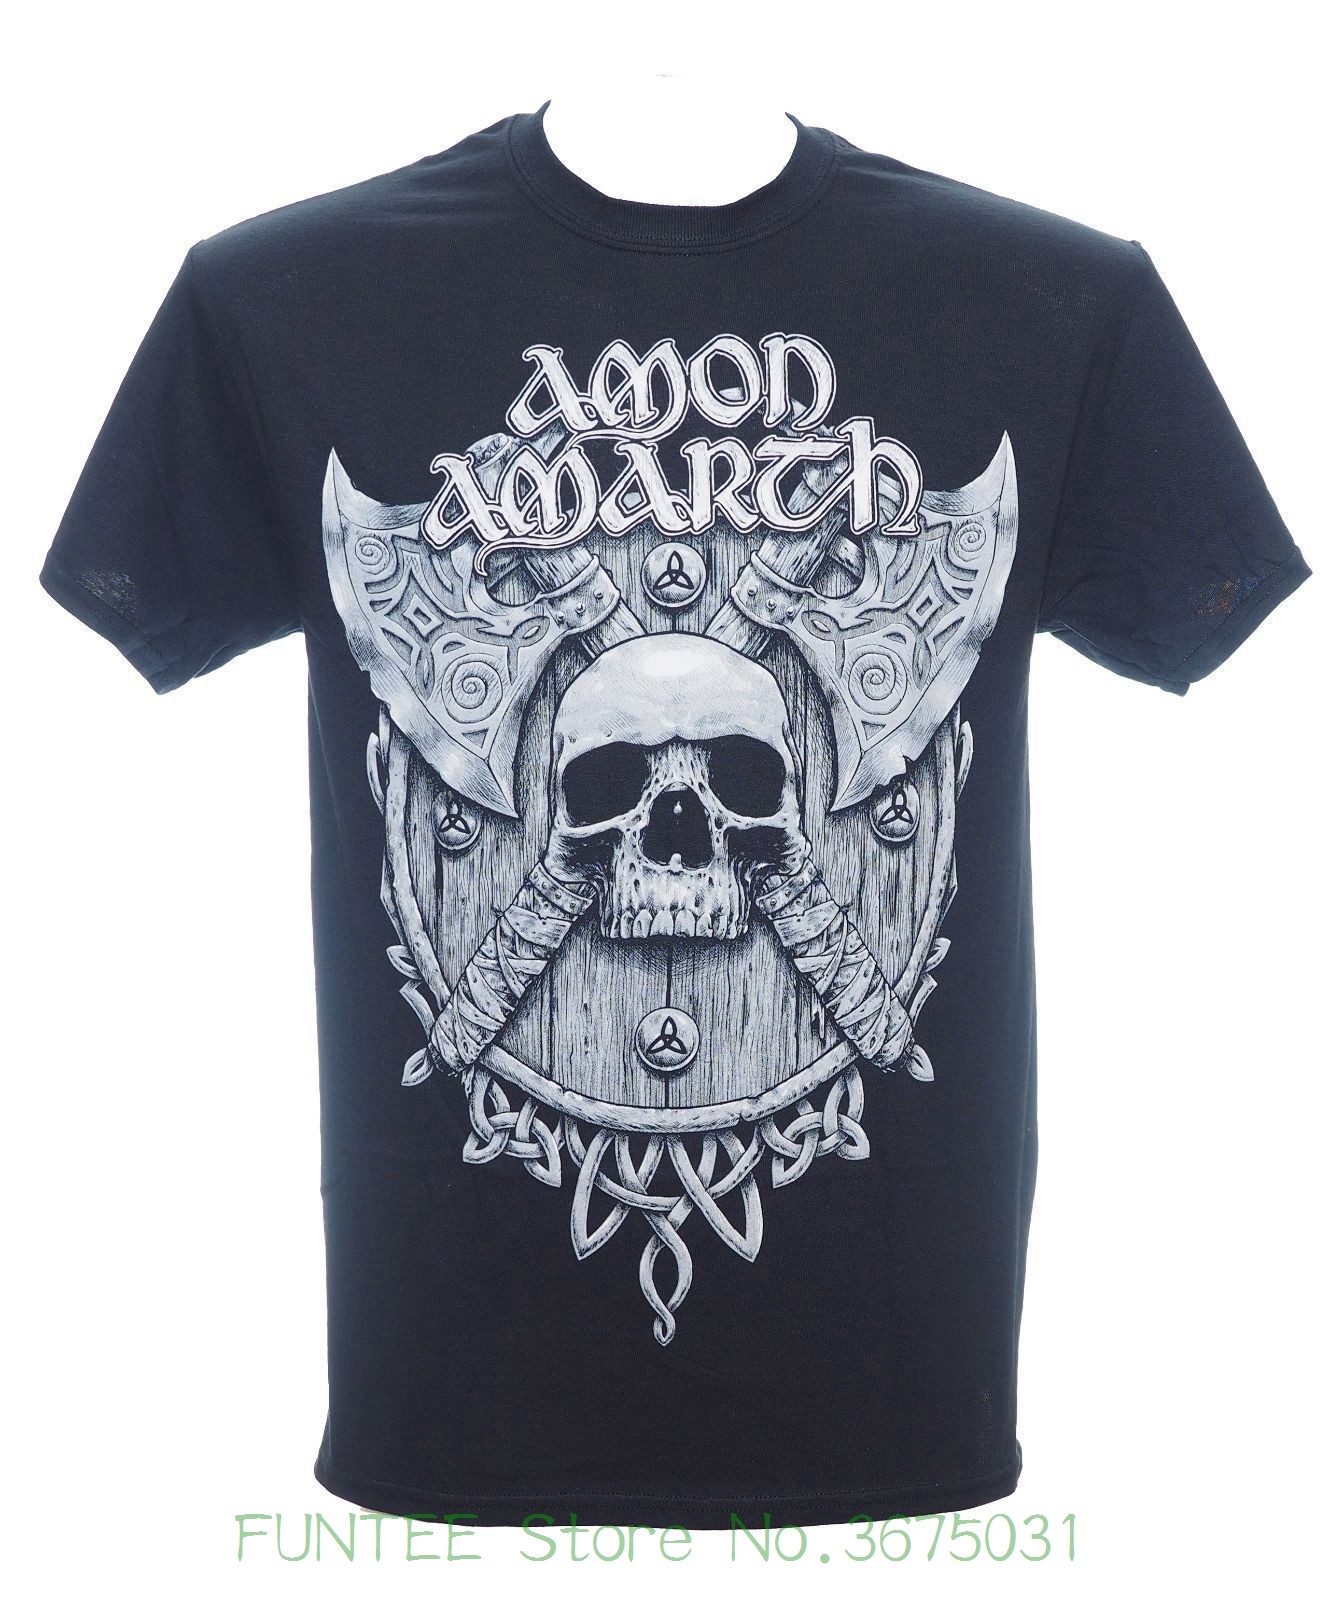 Short Sleeve Mens Formal Shirts Amon Amarth - Grey Skull And Shield T-shirt - Size Medium M - Viking Death Metal ...